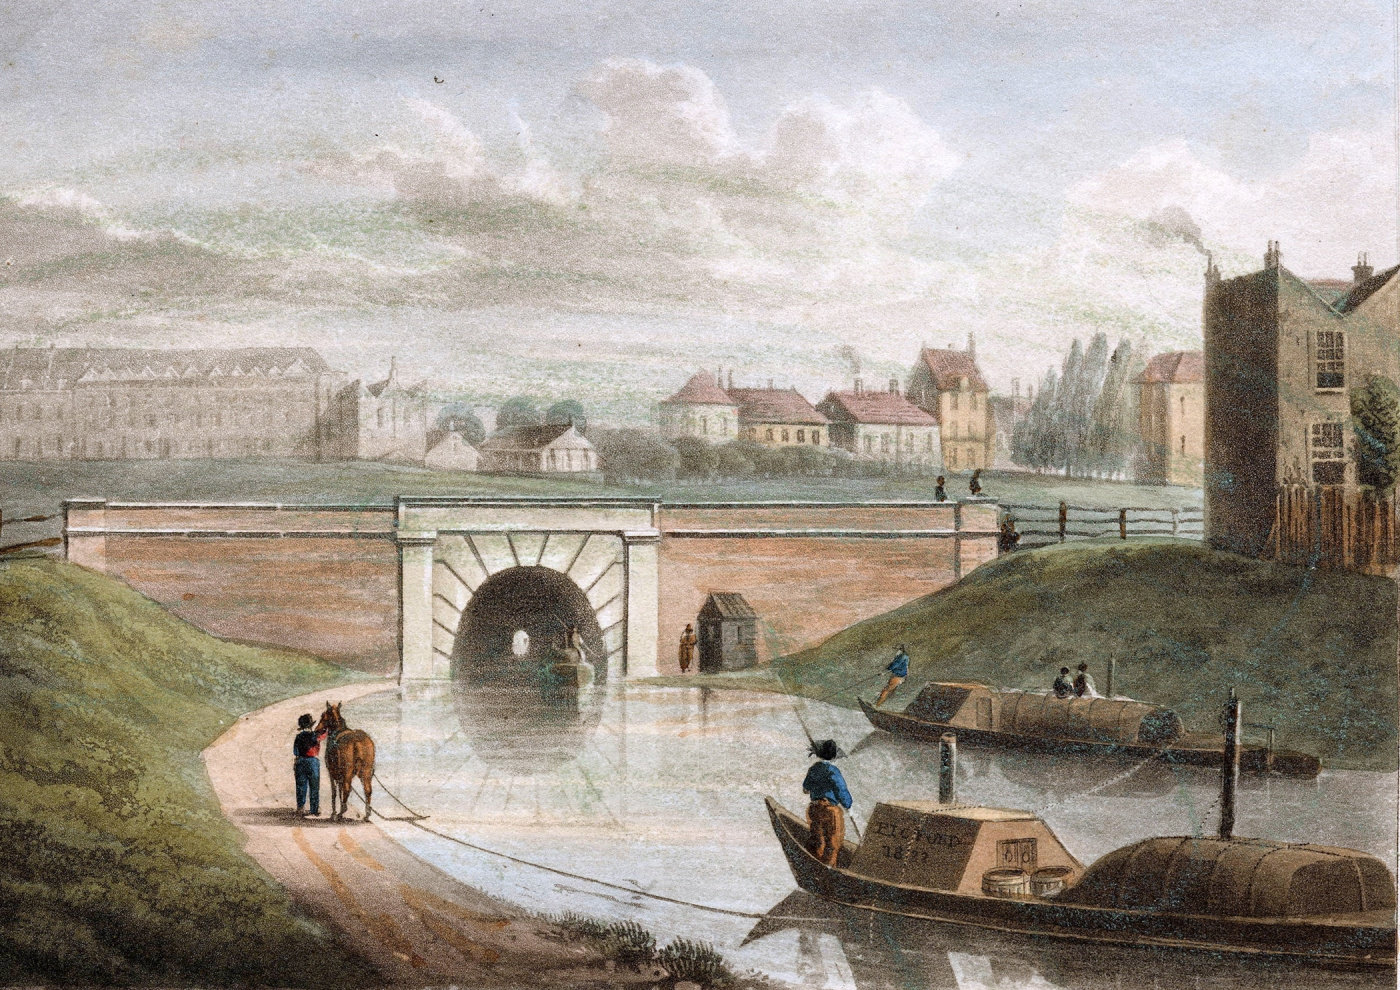 image 01 western end battlebridge of the islington tunnel 1822 1 - Regent's Canal 200th